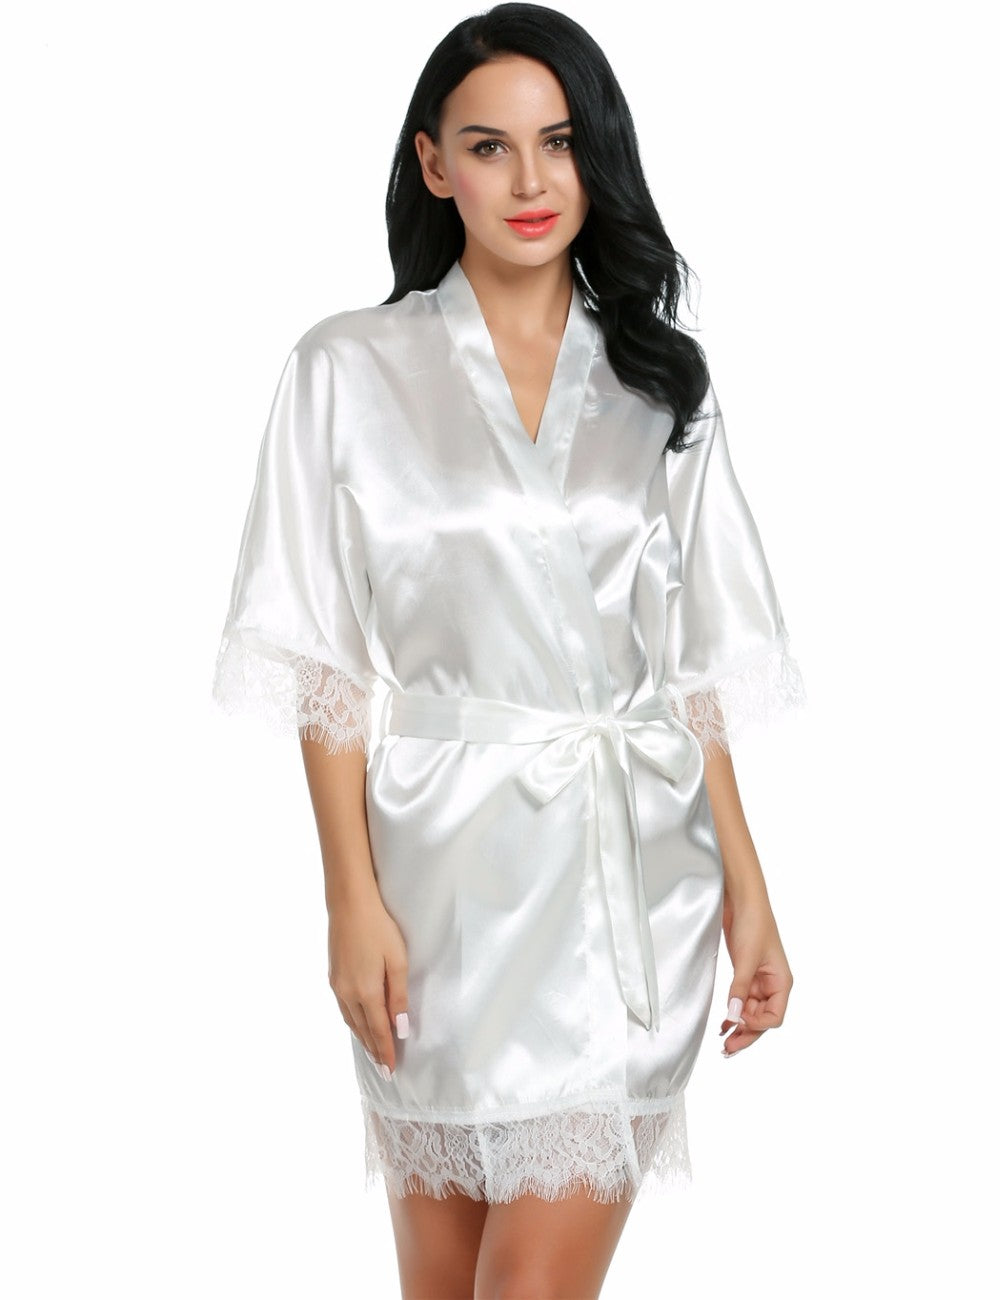 31c666fdf48 6 COLOURS Short Satin Bride Robe Lace Silk Kimono Bathrobe Summer  Bridesmaid Plus Size - FabFunBride